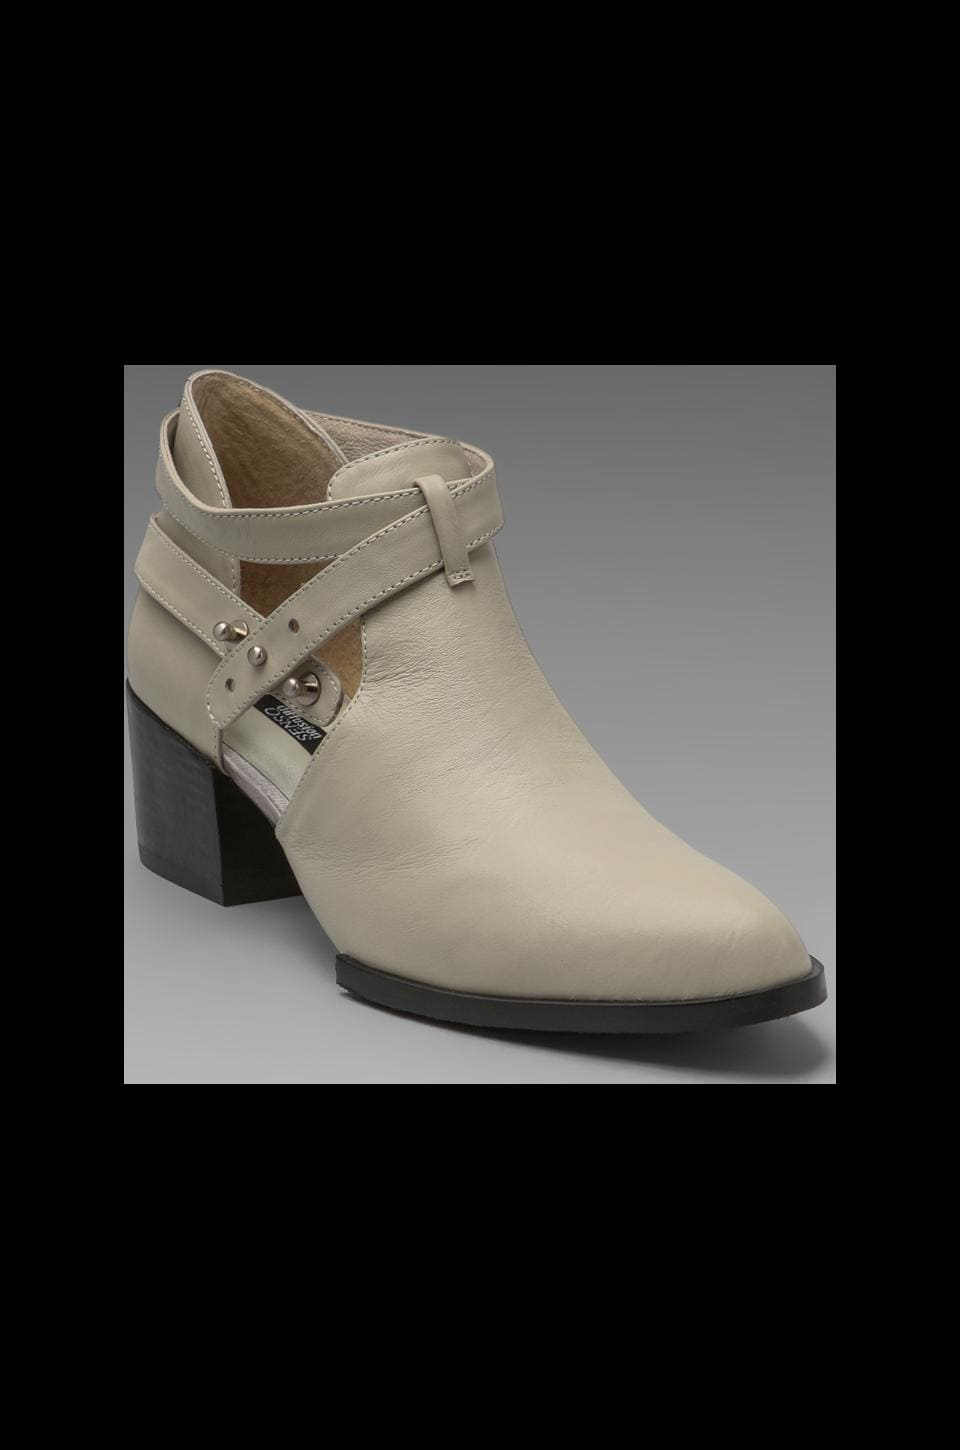 SENSO Qimat Cut Out Bootie in Pale Grey